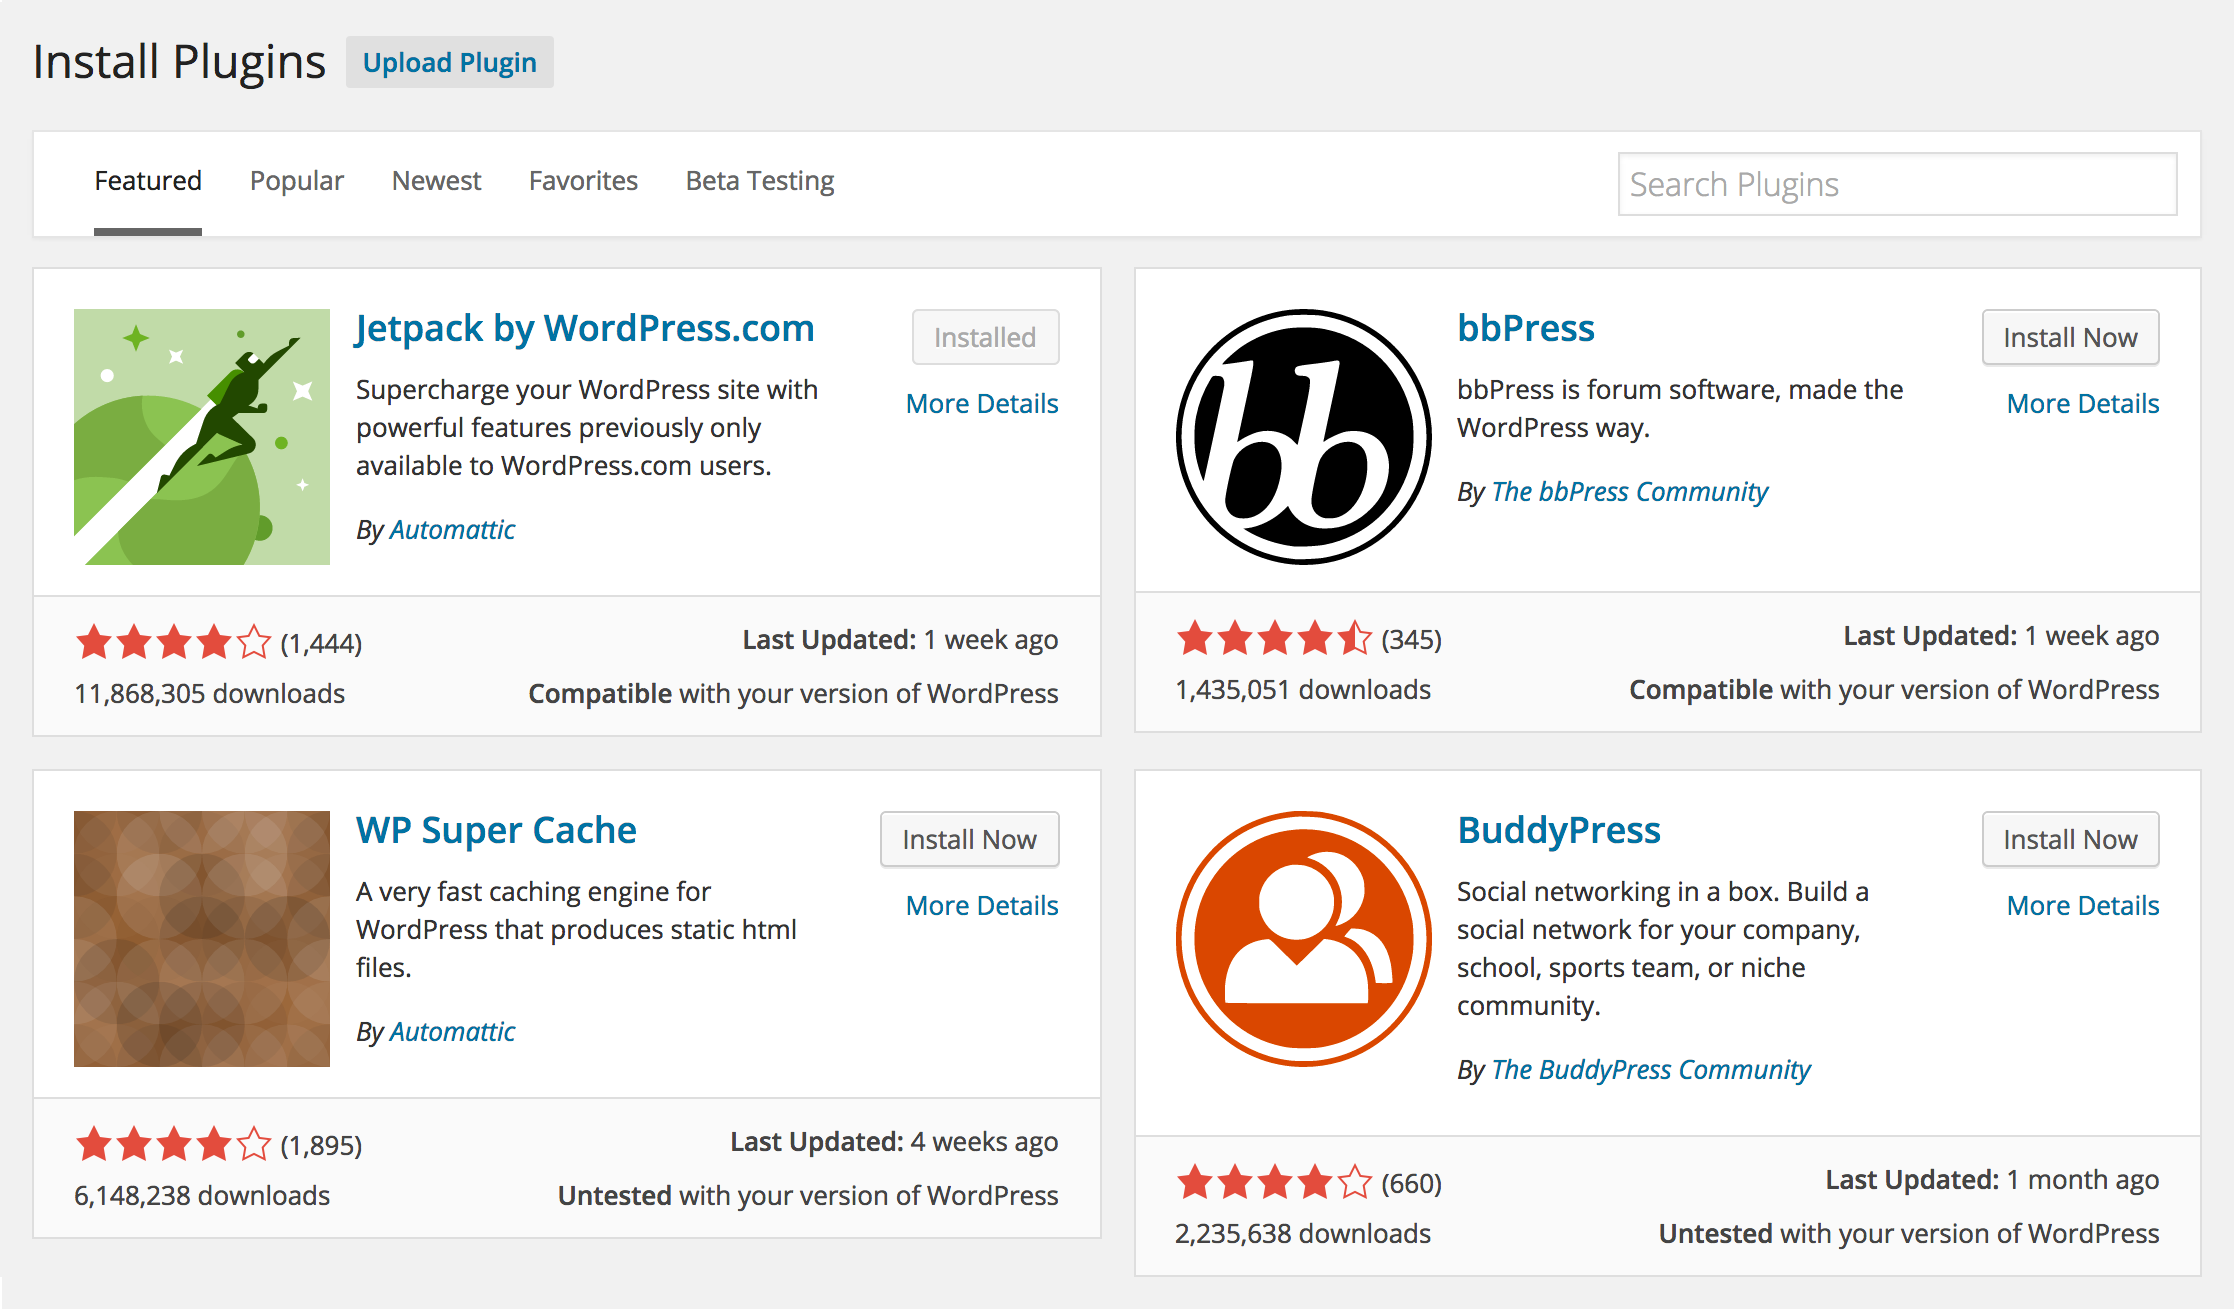 Busca facilitada de plugins no WordPress 4.0